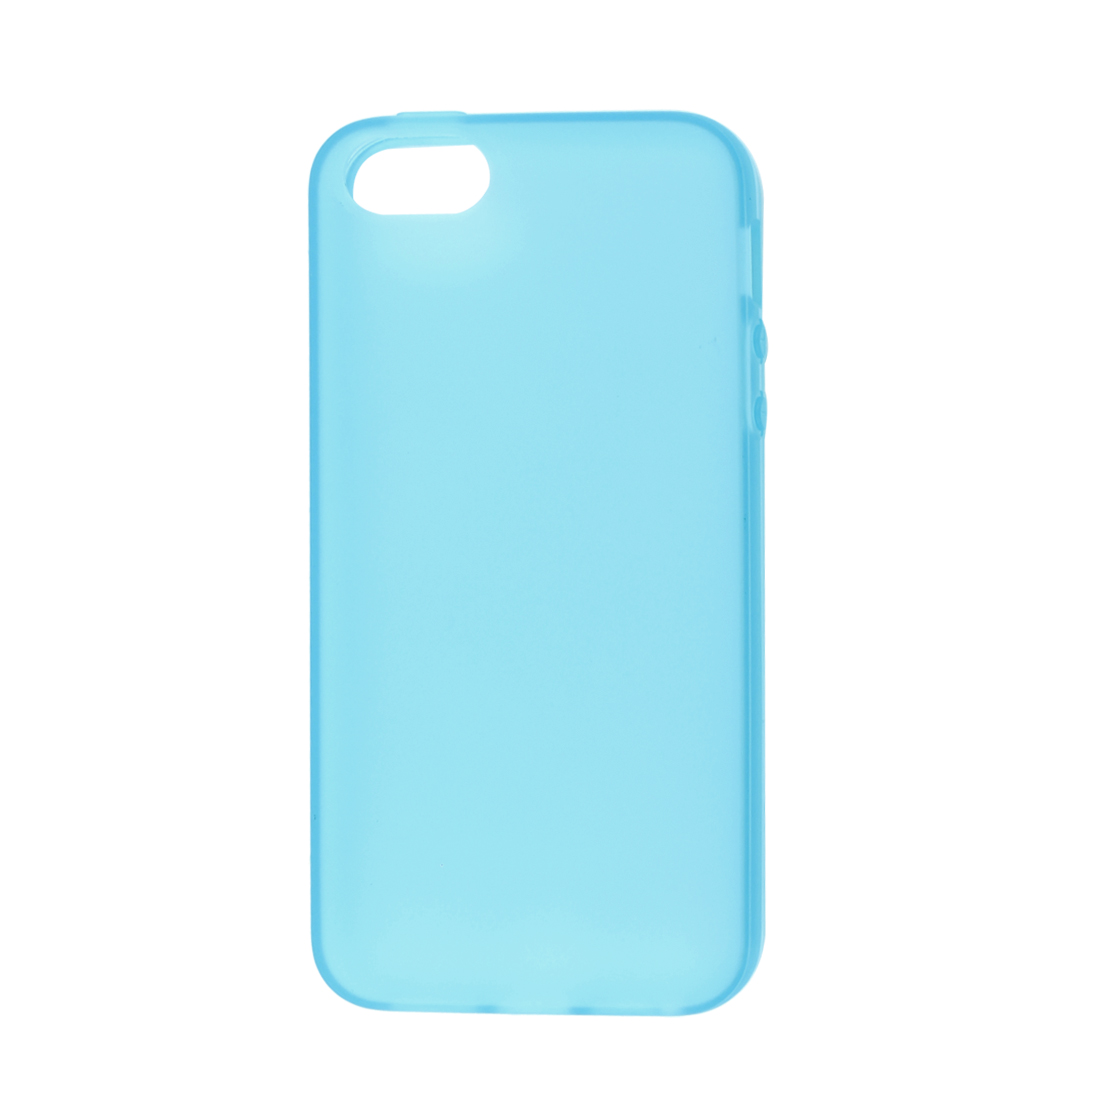 Solid Blue TPU Soft Plastic Protect Back Case Cover for iPhone 5 5G